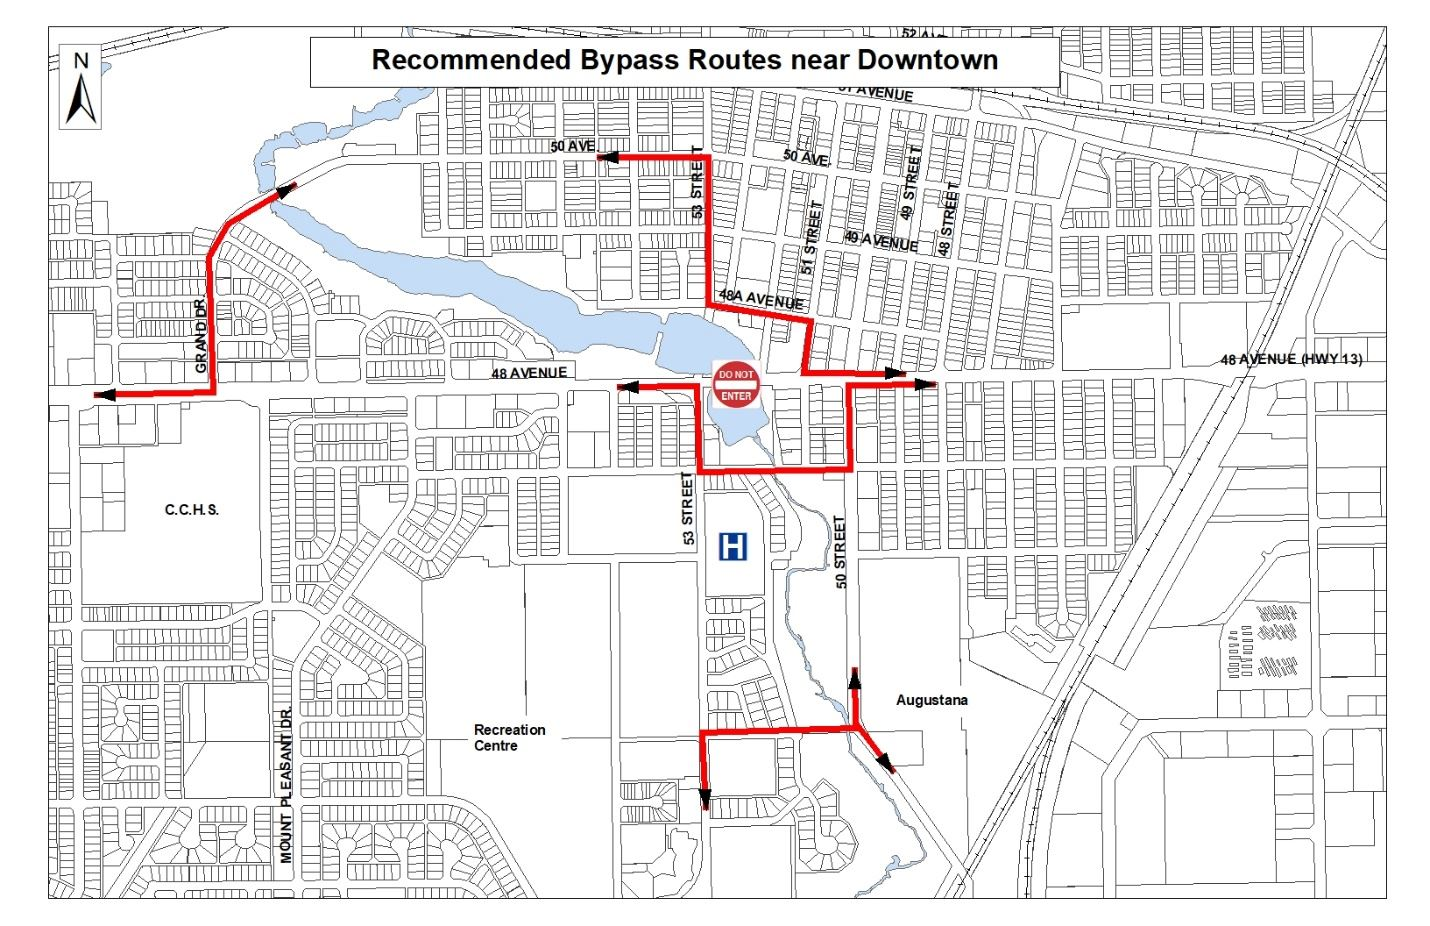 Recommended Bypass Routes near Downtown